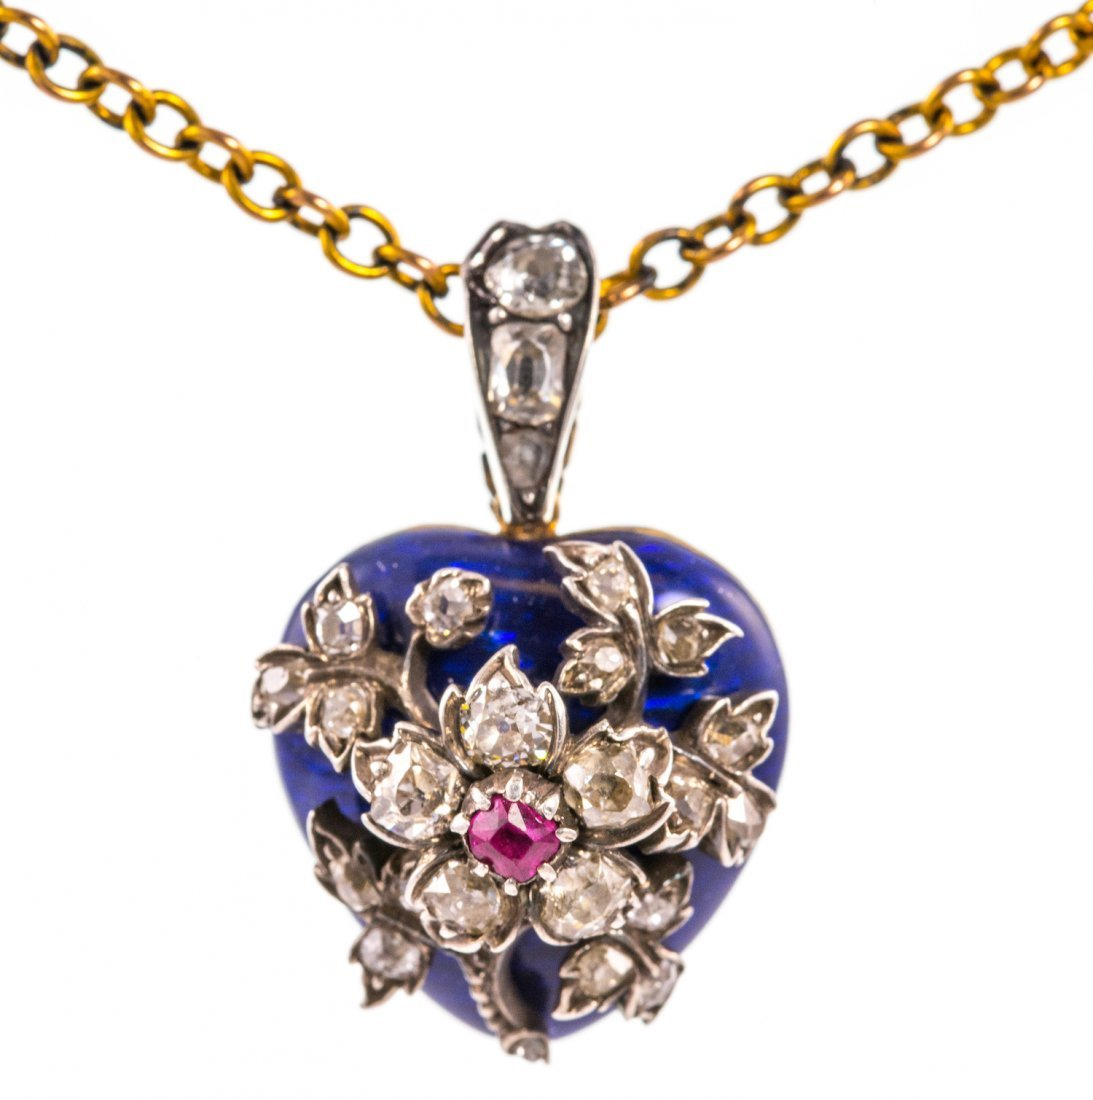 Gold, Enamel, Diamond and Ruby Victorian Heart Pendent